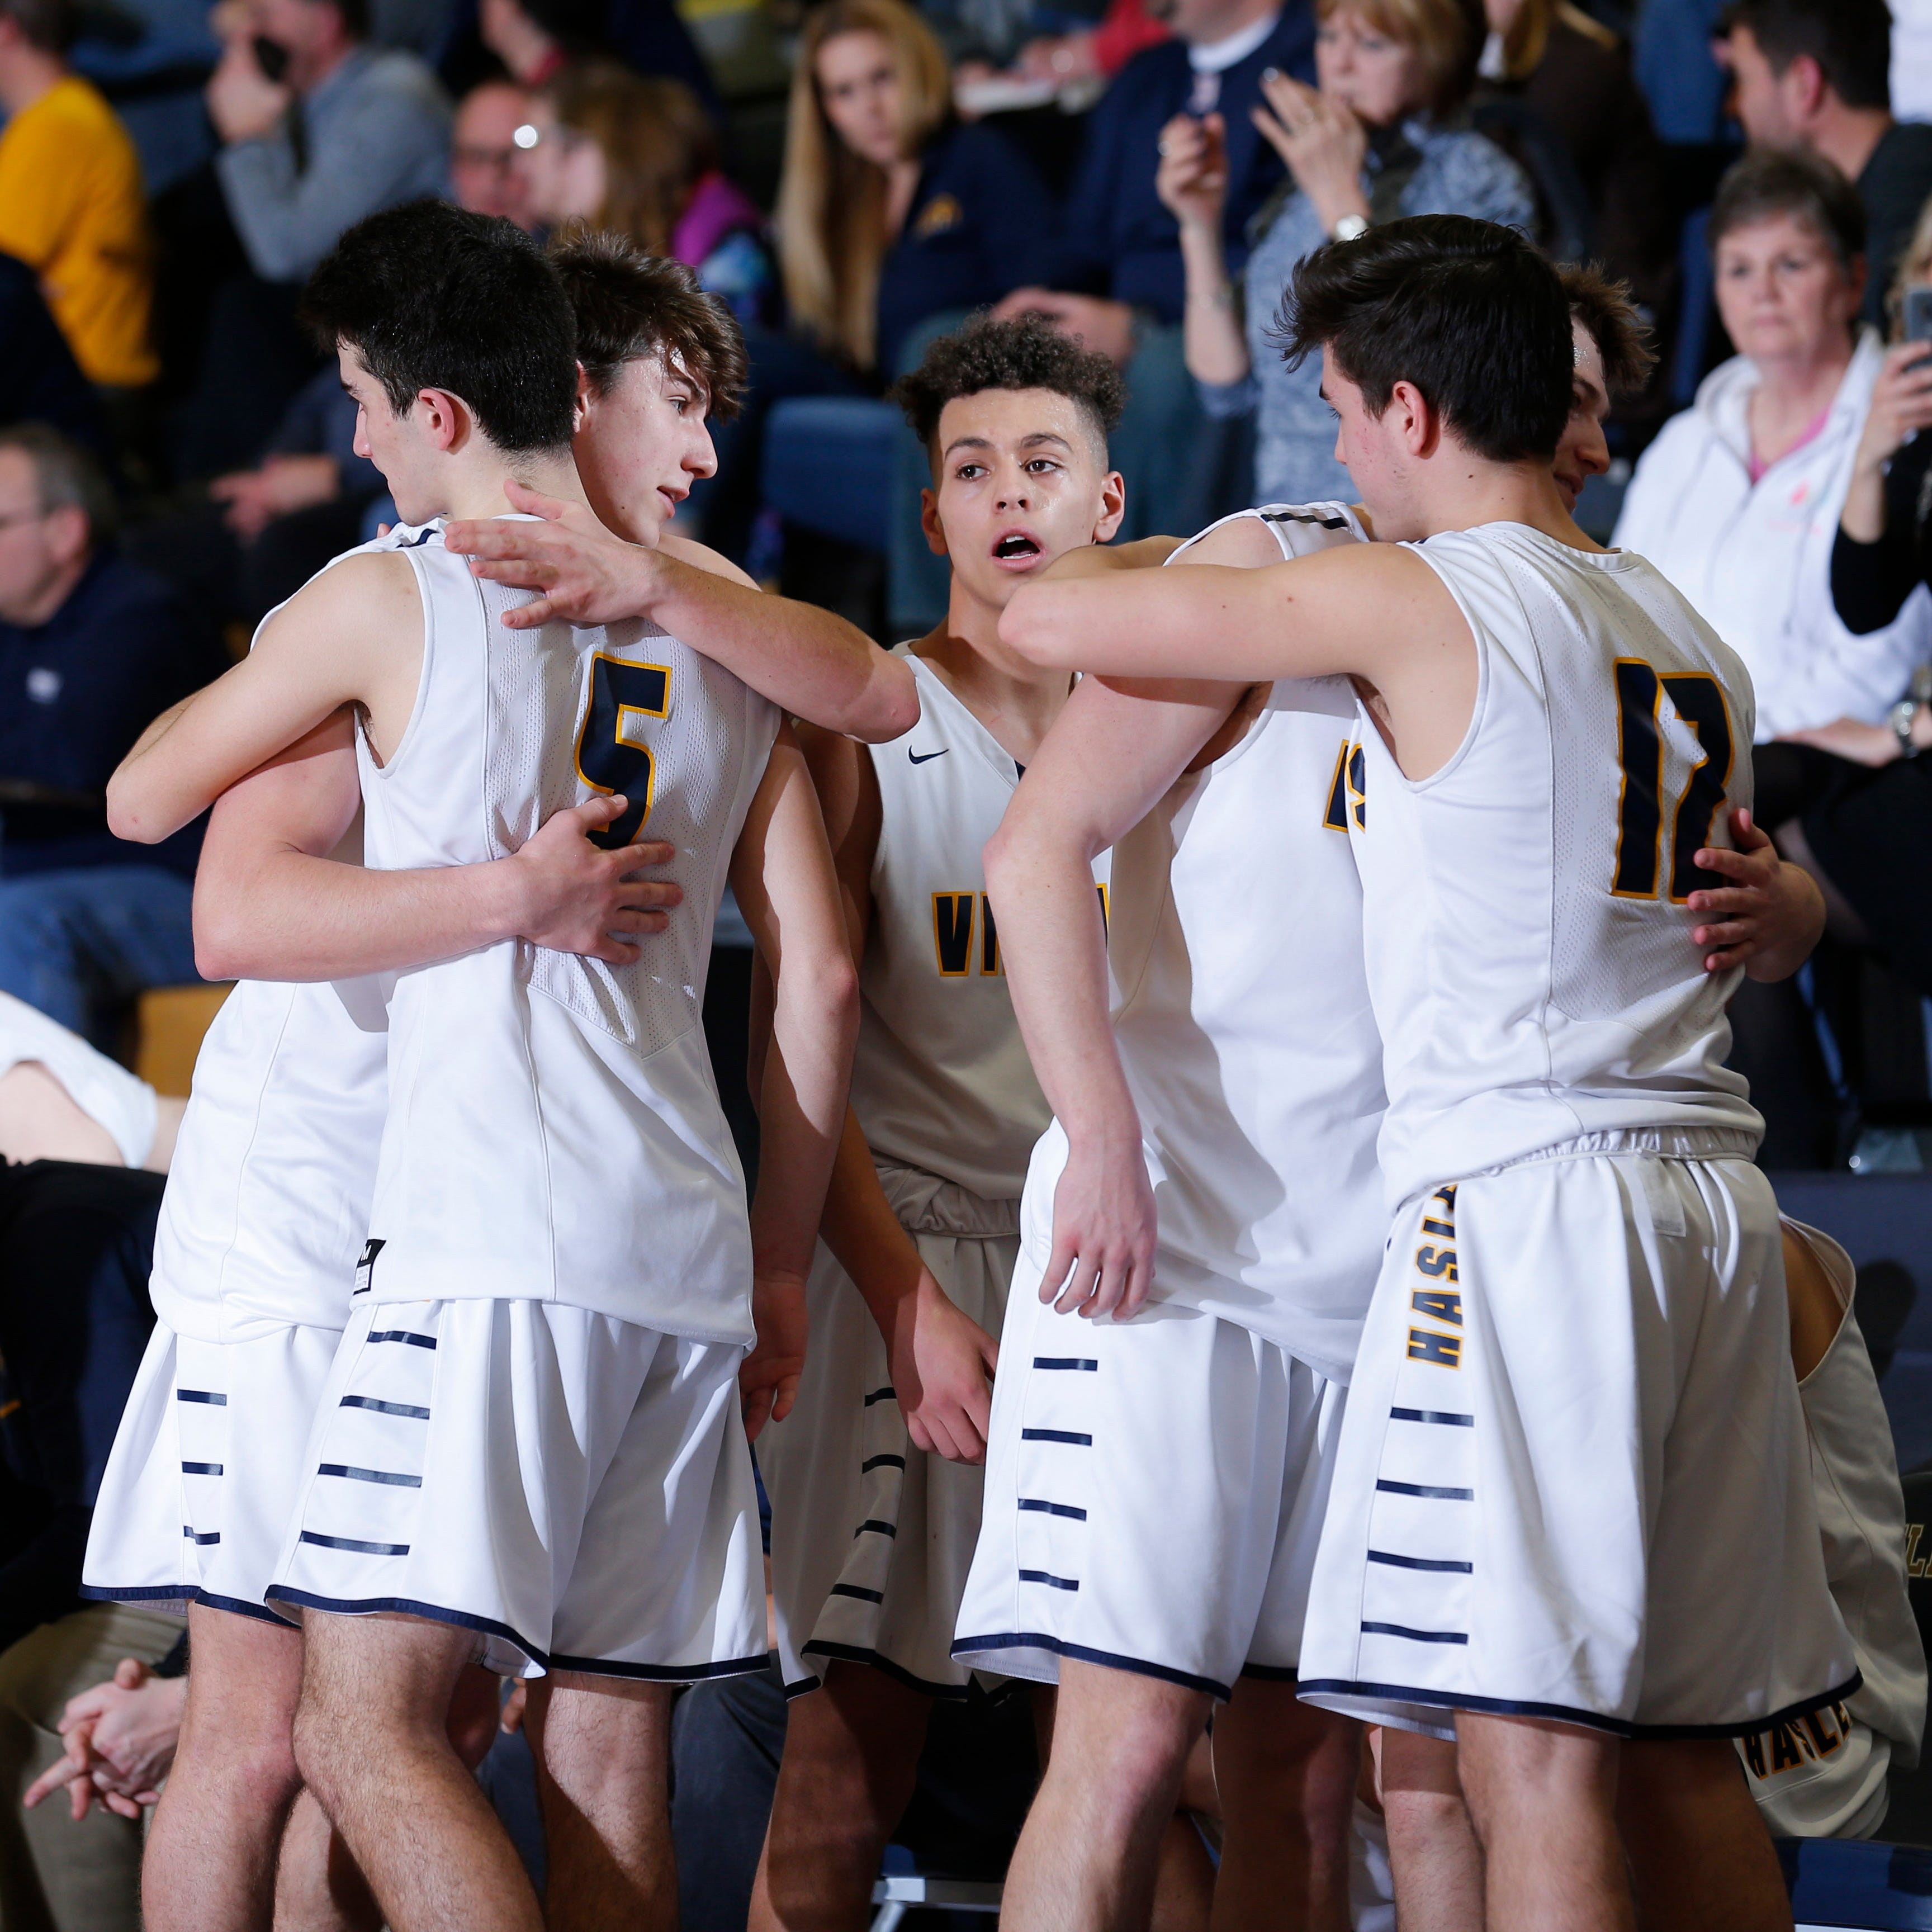 Despite state quarterfinal loss, it's been an 'awesome ride' for Haslett basketball